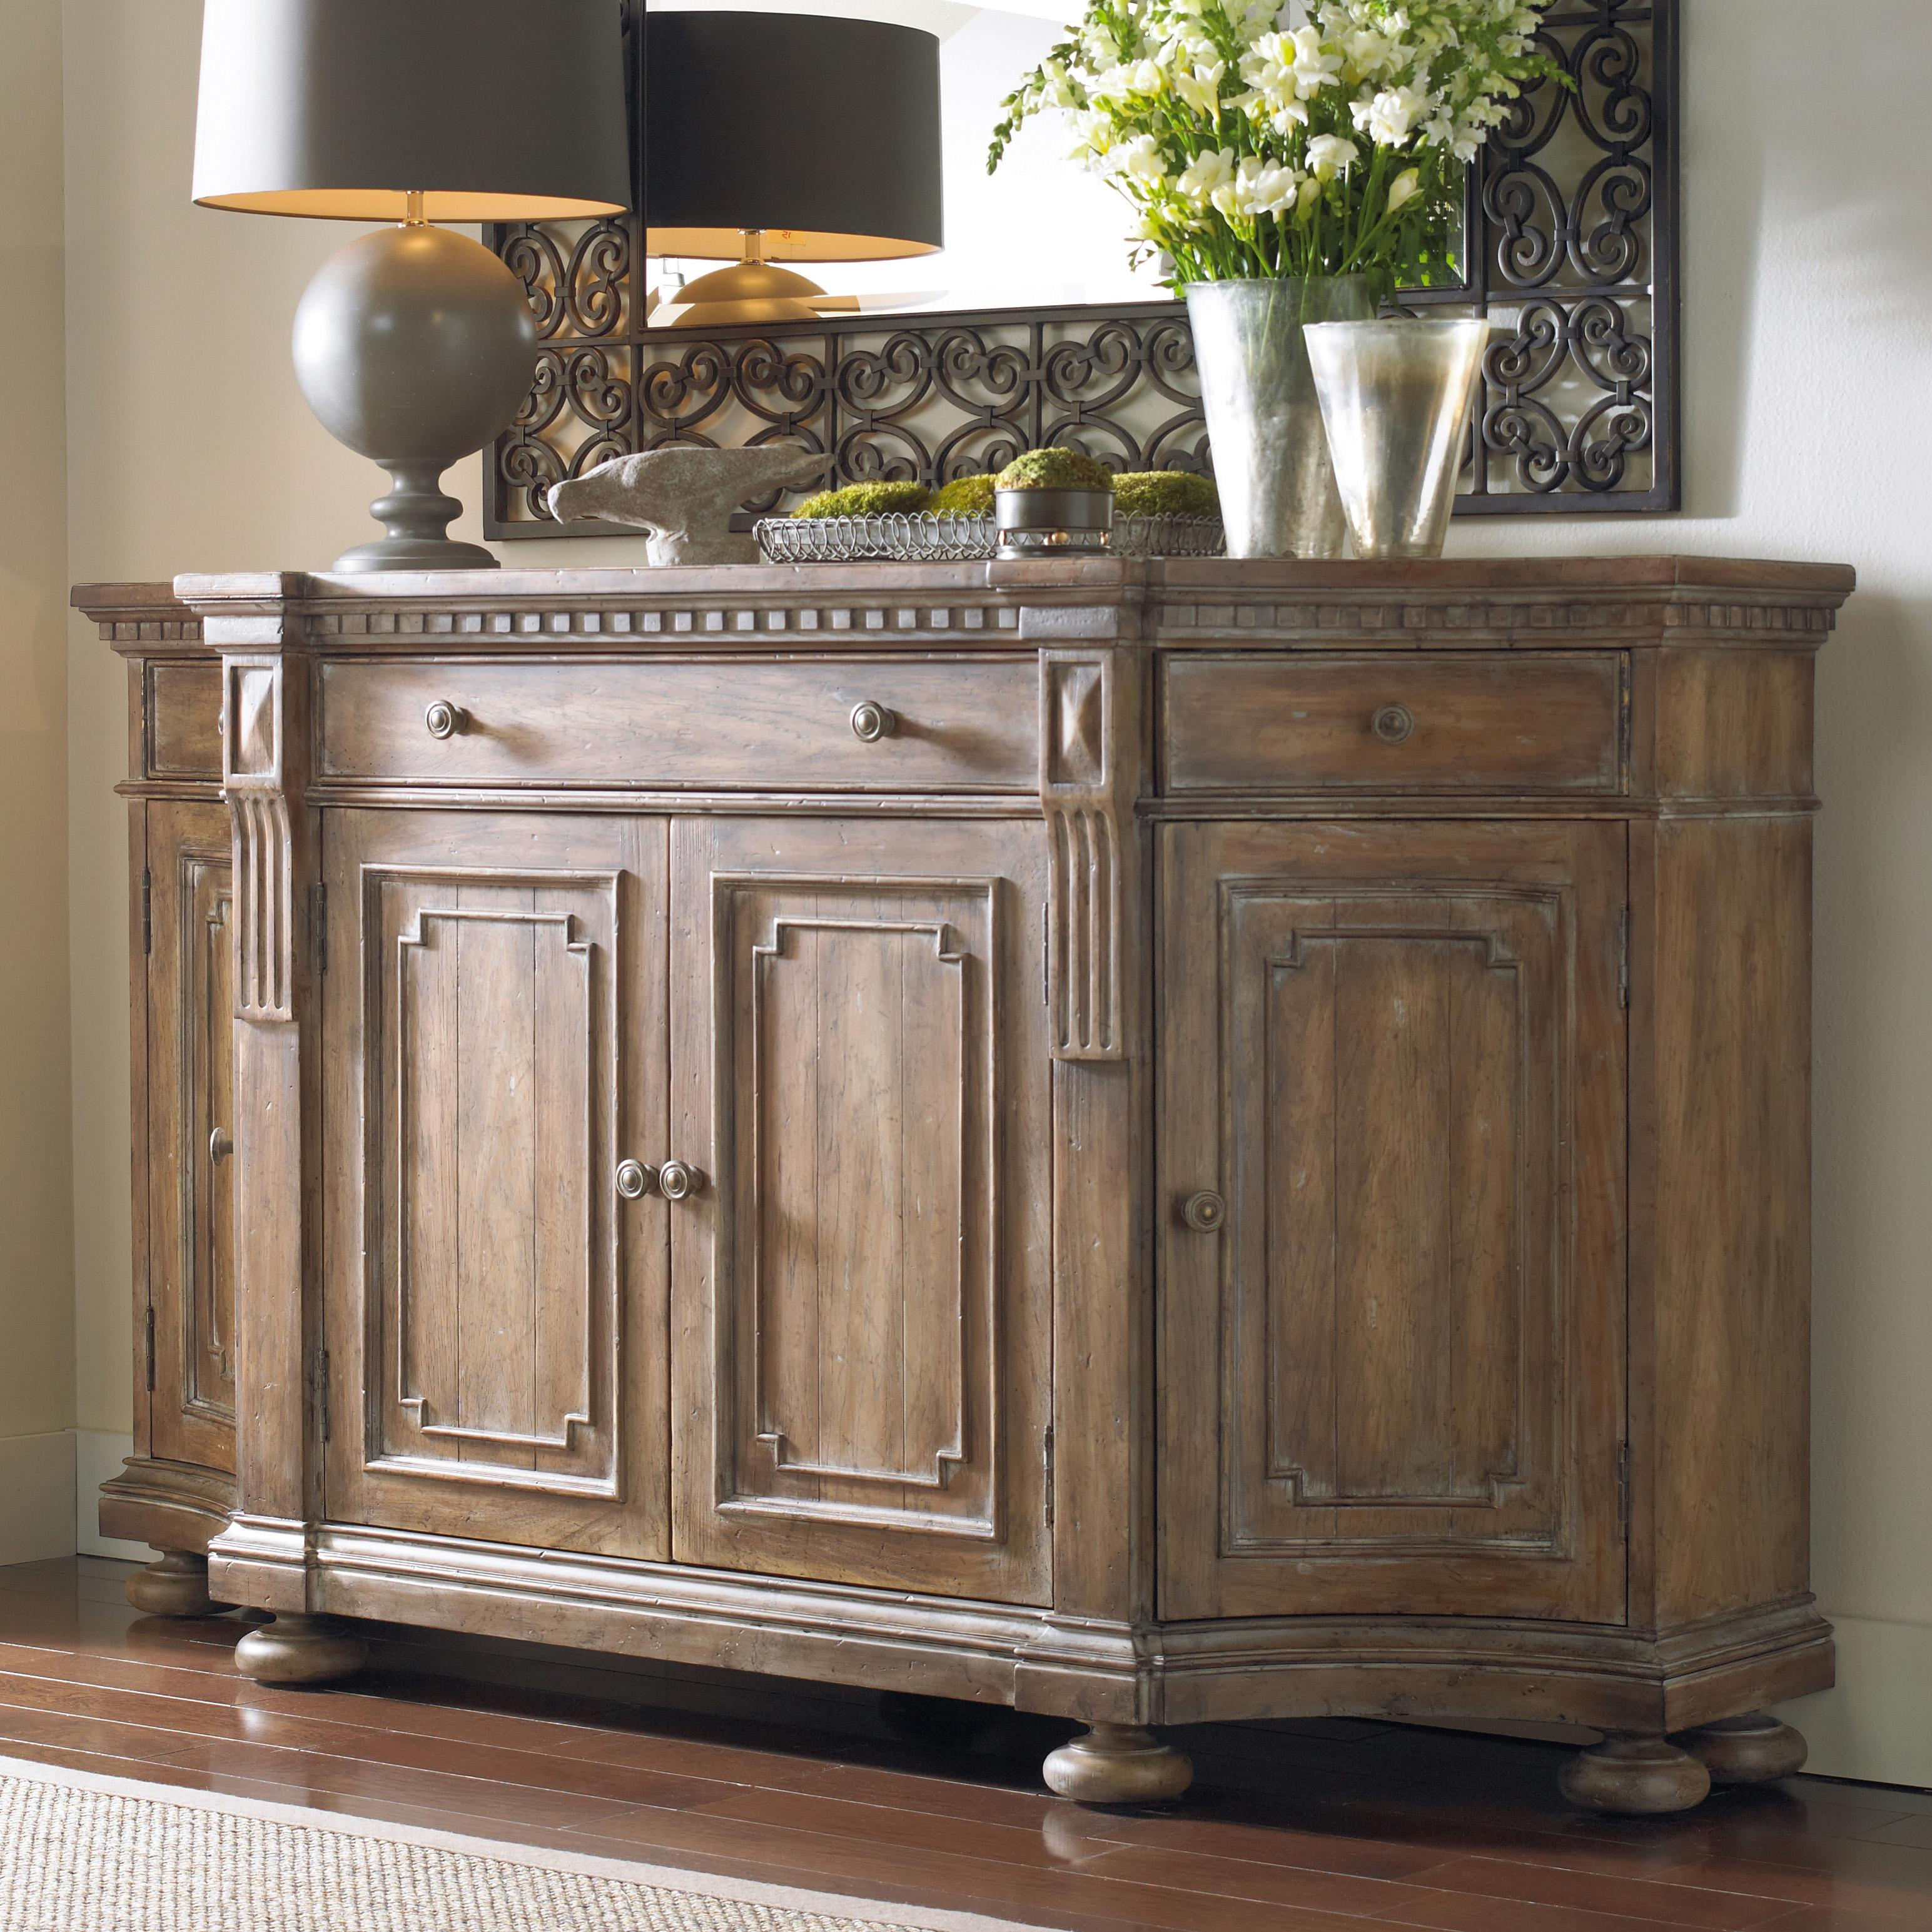 Hooker Furniture Sorella 5107 85001 Shaped Credenza With